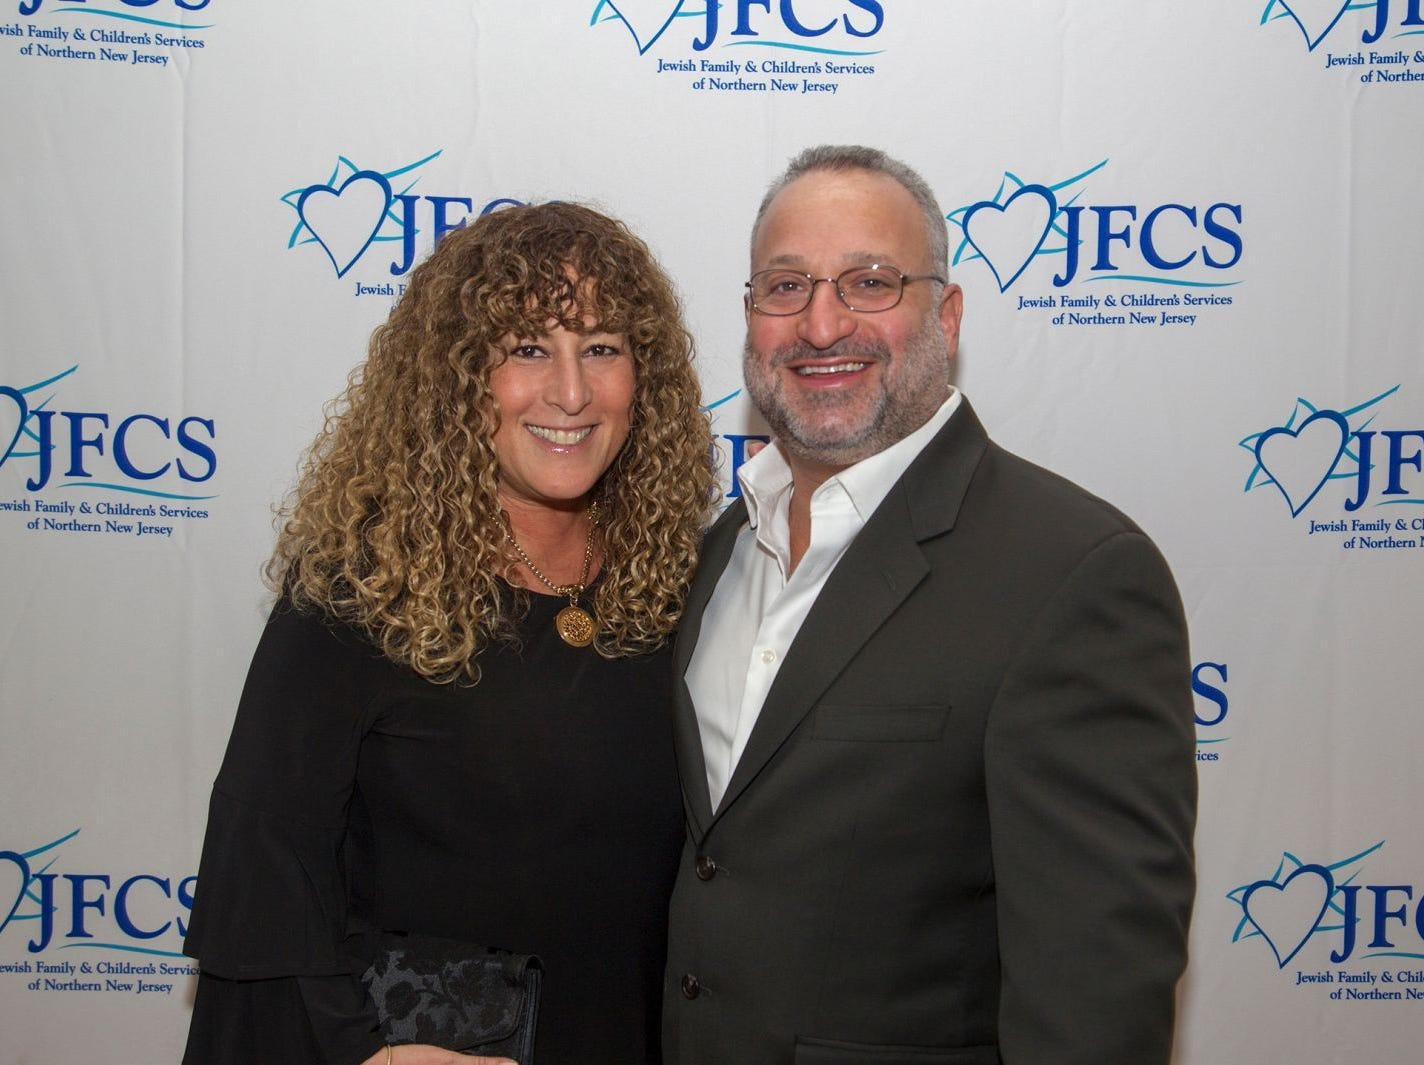 Linda and Brad Ruder. Jewish Family & Children's Services of Northern New Jersey held its annual gala at the Edgewood Country Club in River Vale. The evening honored Shira Feuerstein, Jayne Petak, and Alan Scharfstein for their leadership, support, and dedication. 11/18/2018